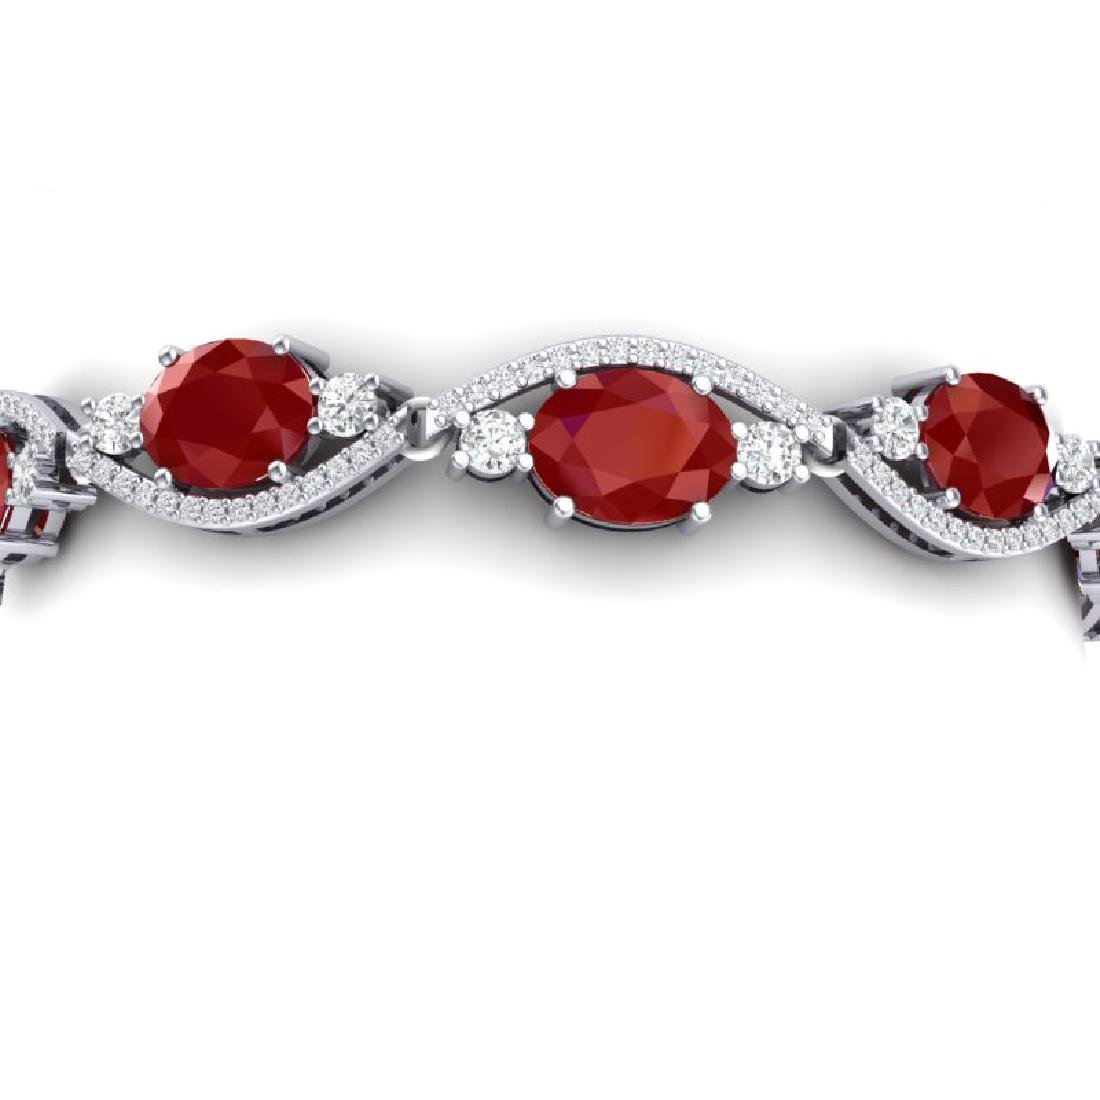 22.15 CTW Royalty Ruby & VS Diamond Bracelet 18K White